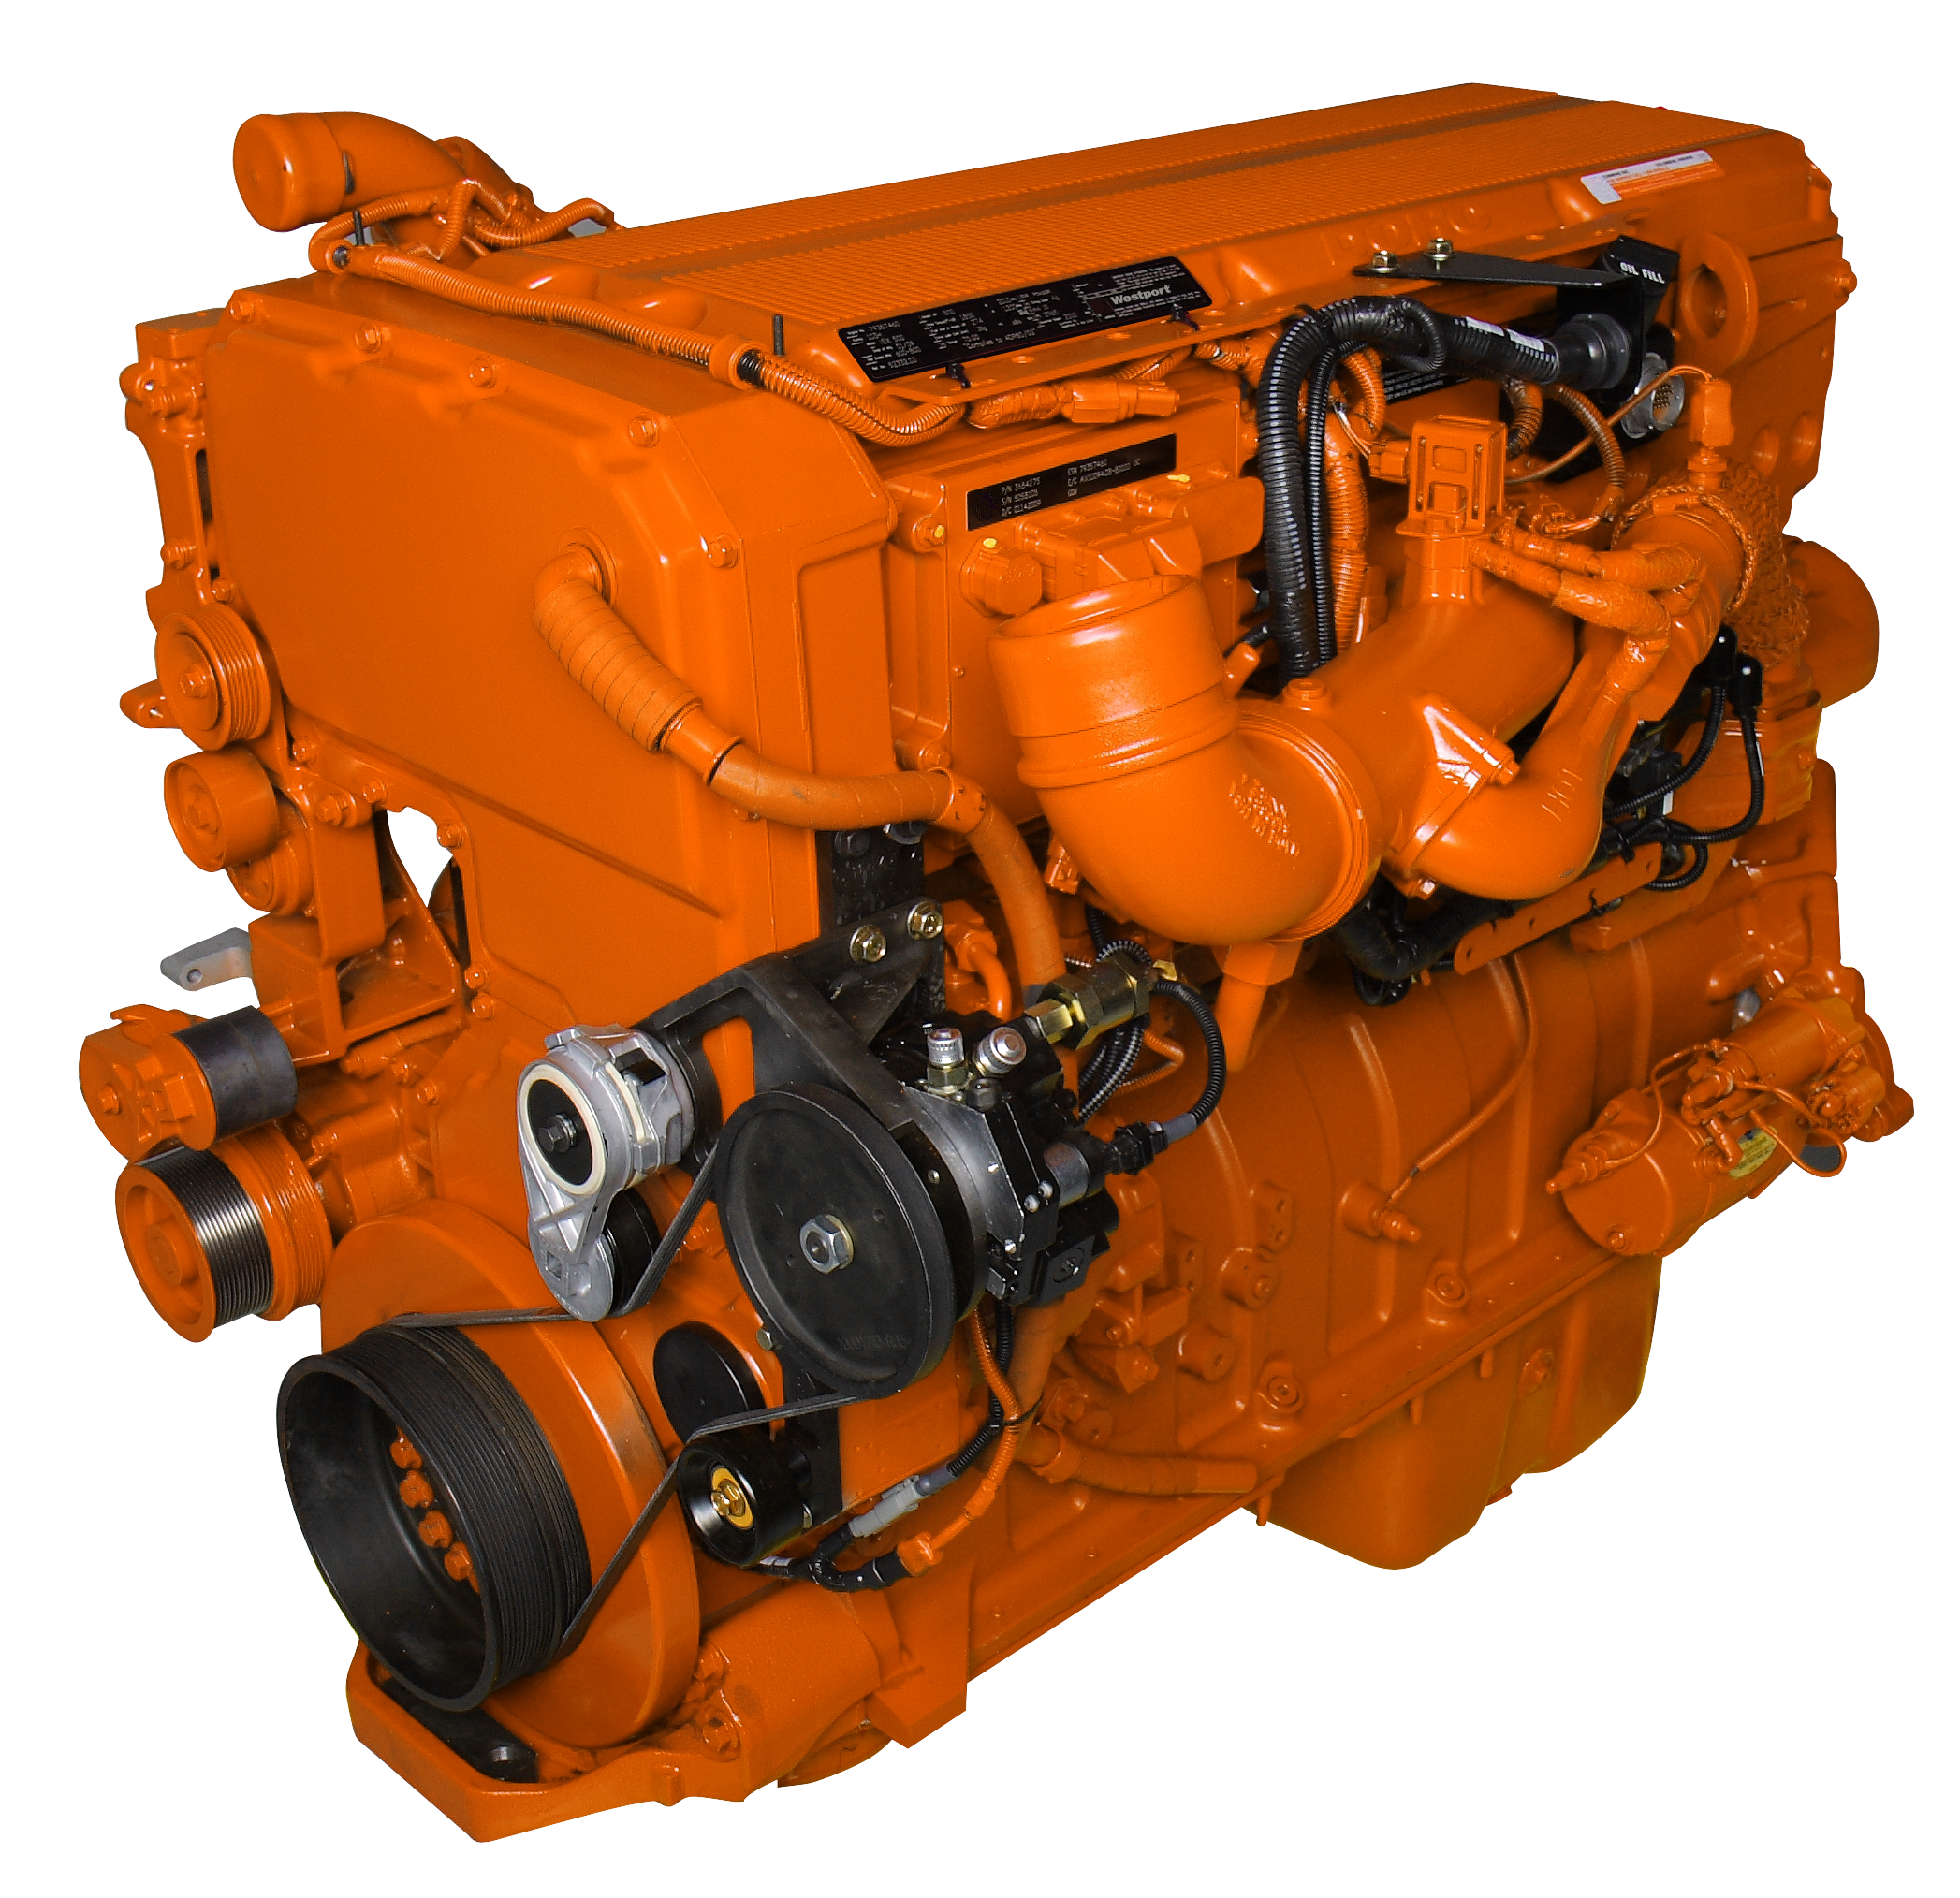 Westport Dropping 15-Liter LNG Engine for North America